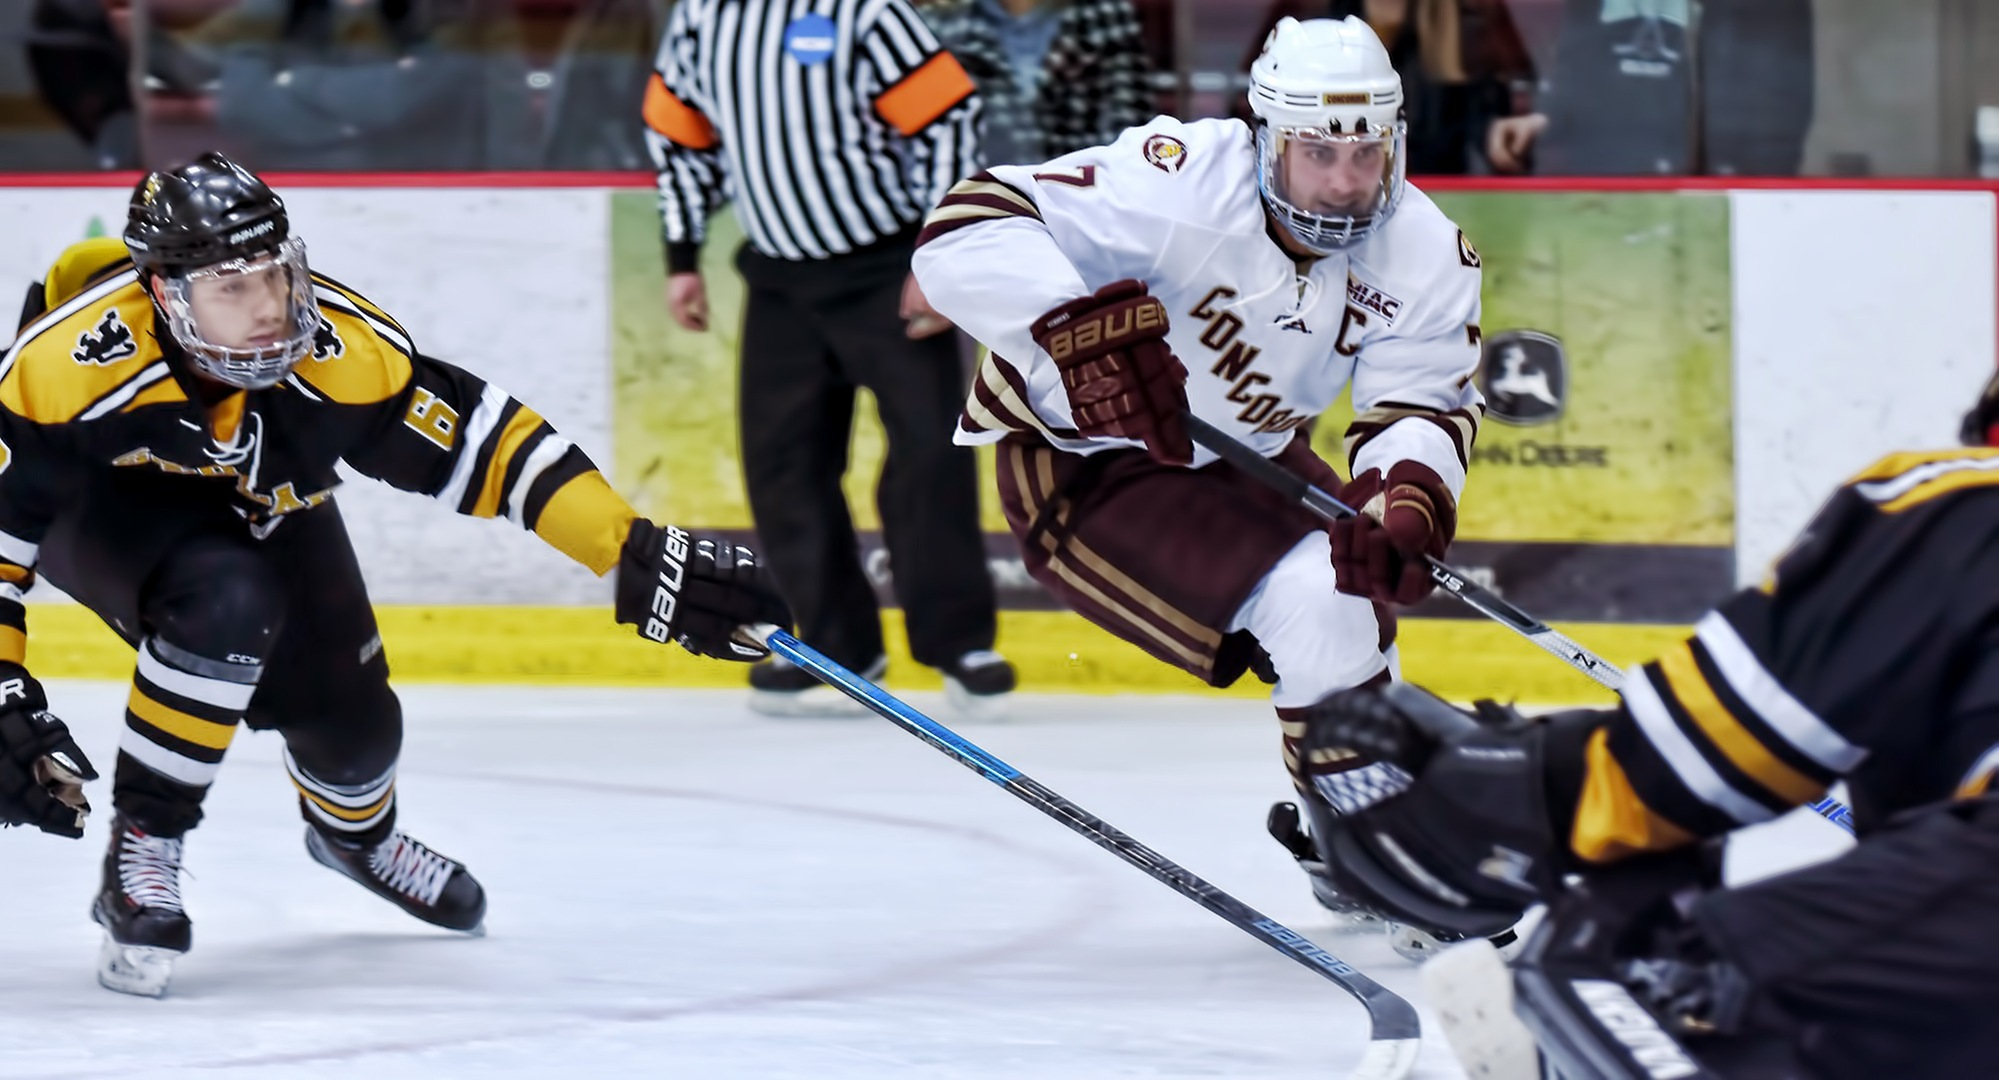 Senior Joe Burgmeier had the game-winning goal in the Cobbers' series-sweeping 4-1 win at St. Olaf.